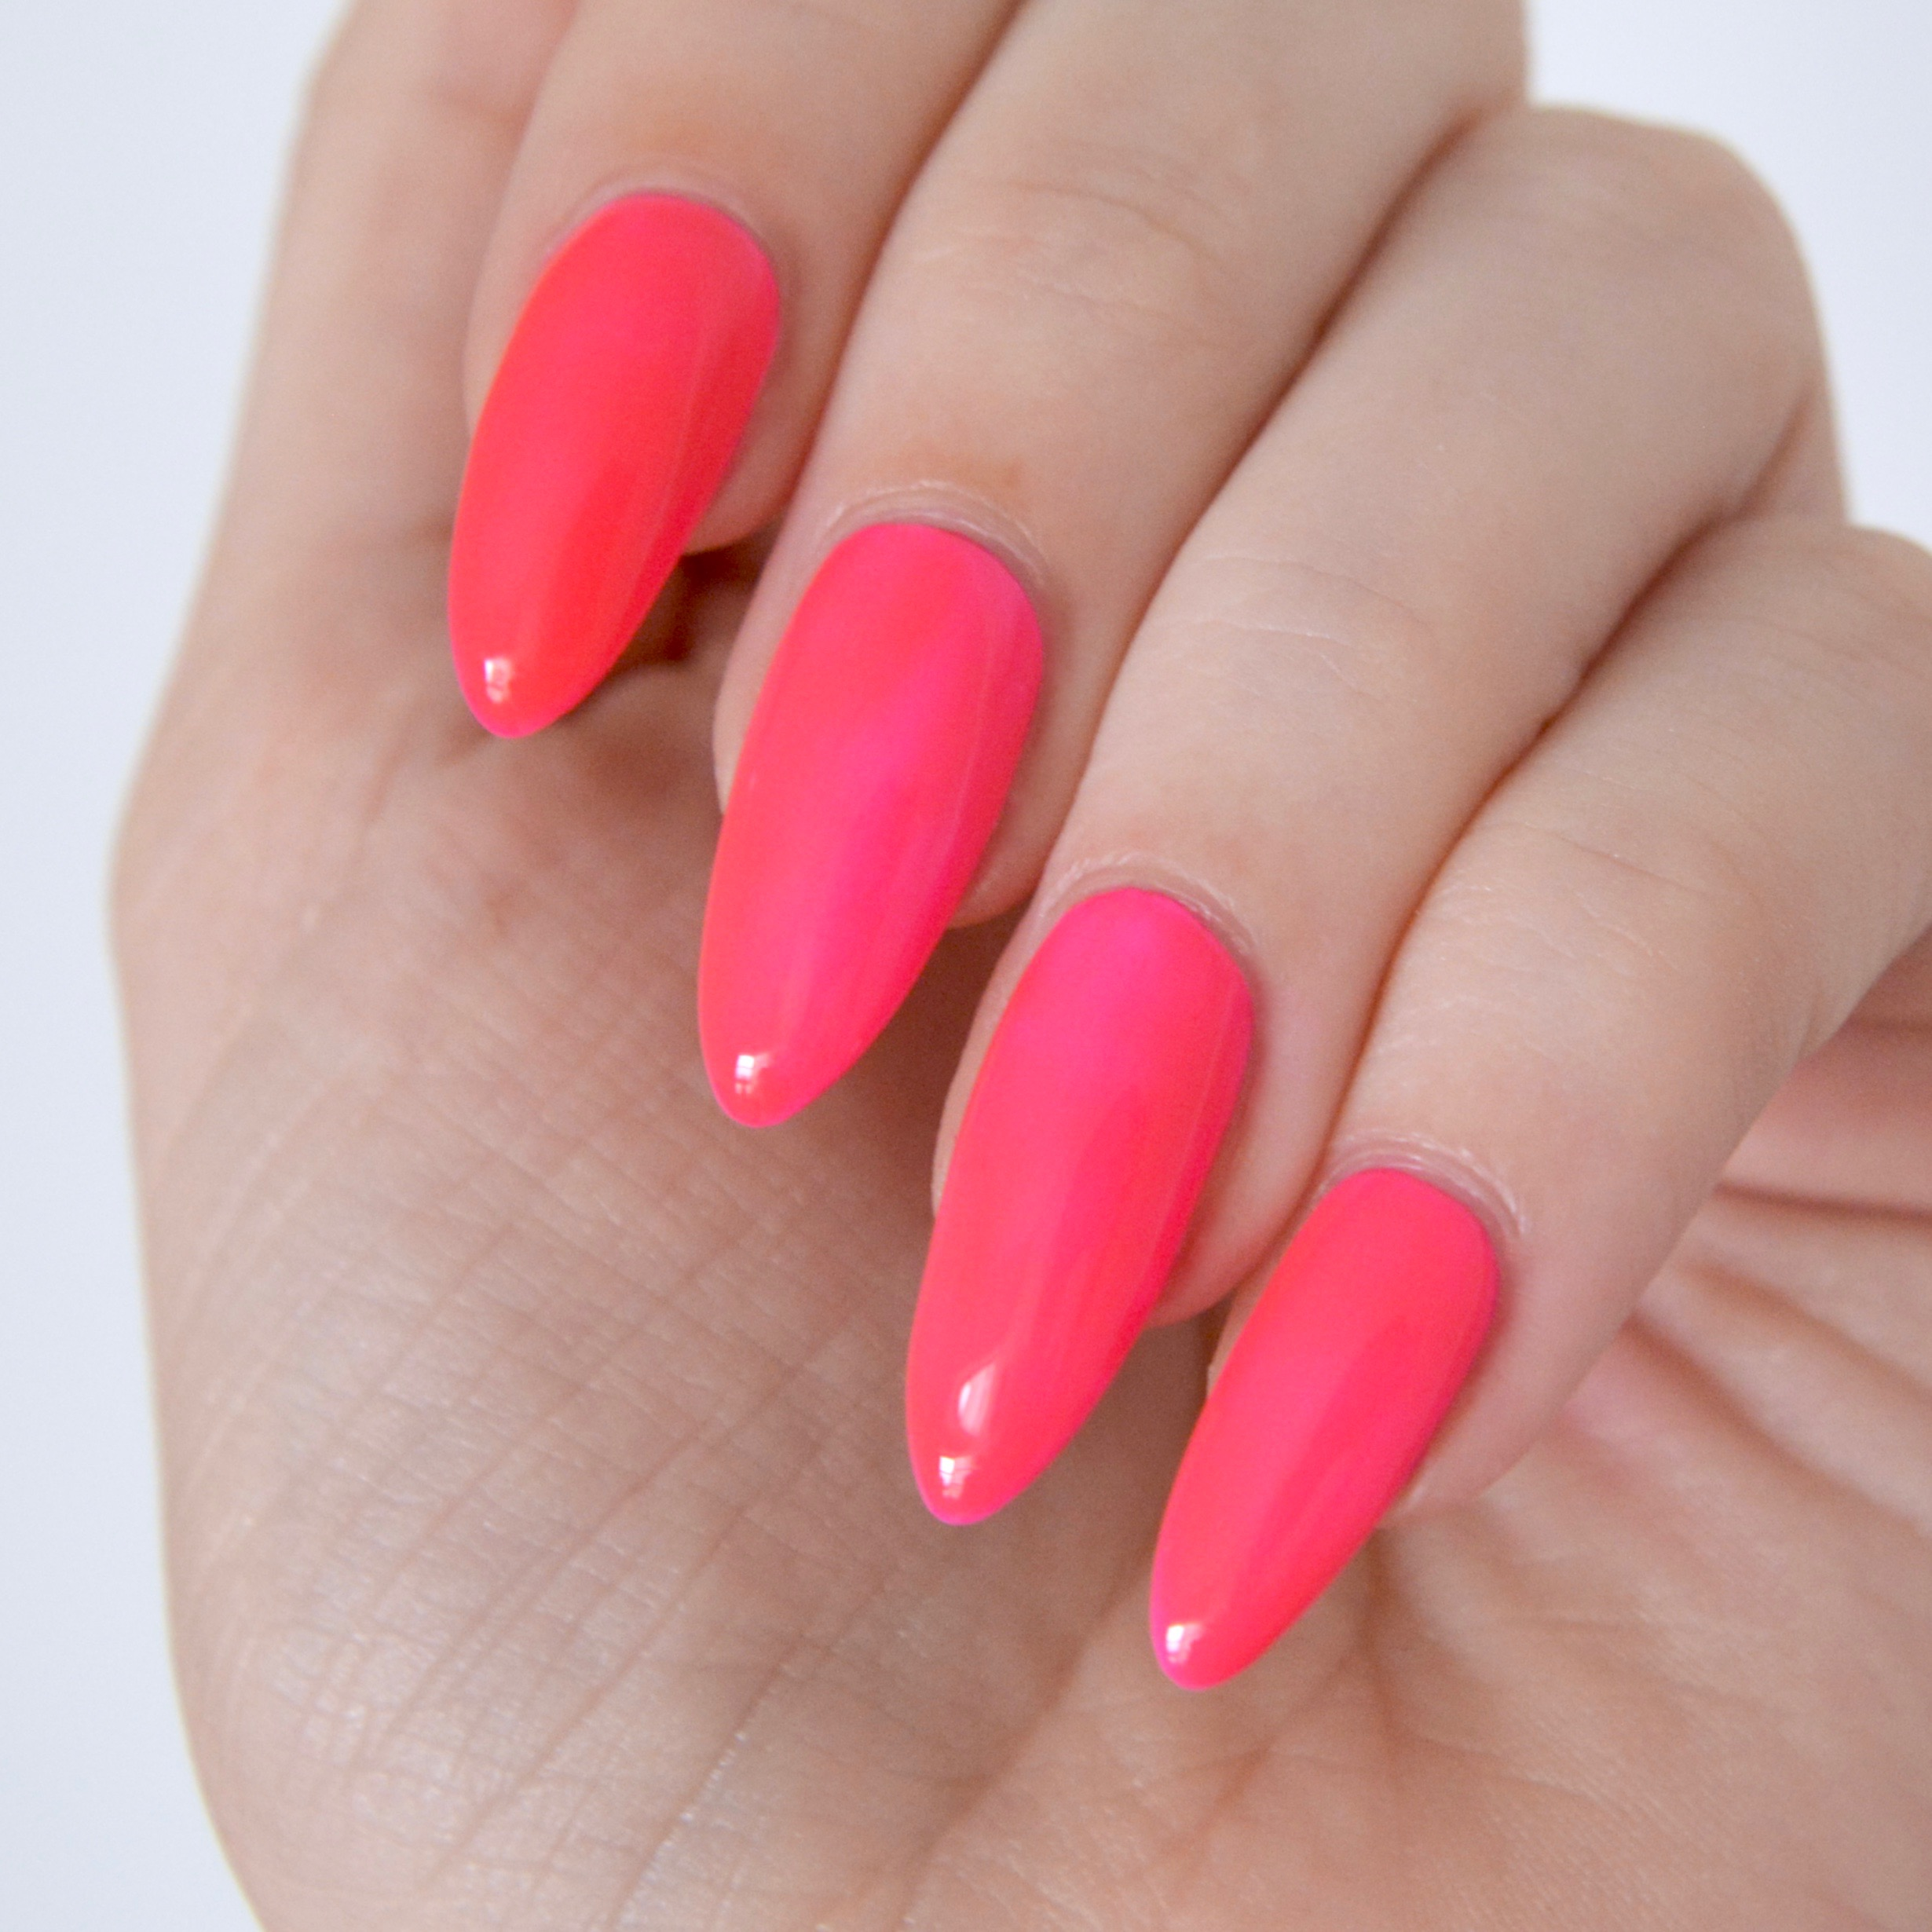 Essie-Neon-off-the-wall-1 - talonted lex